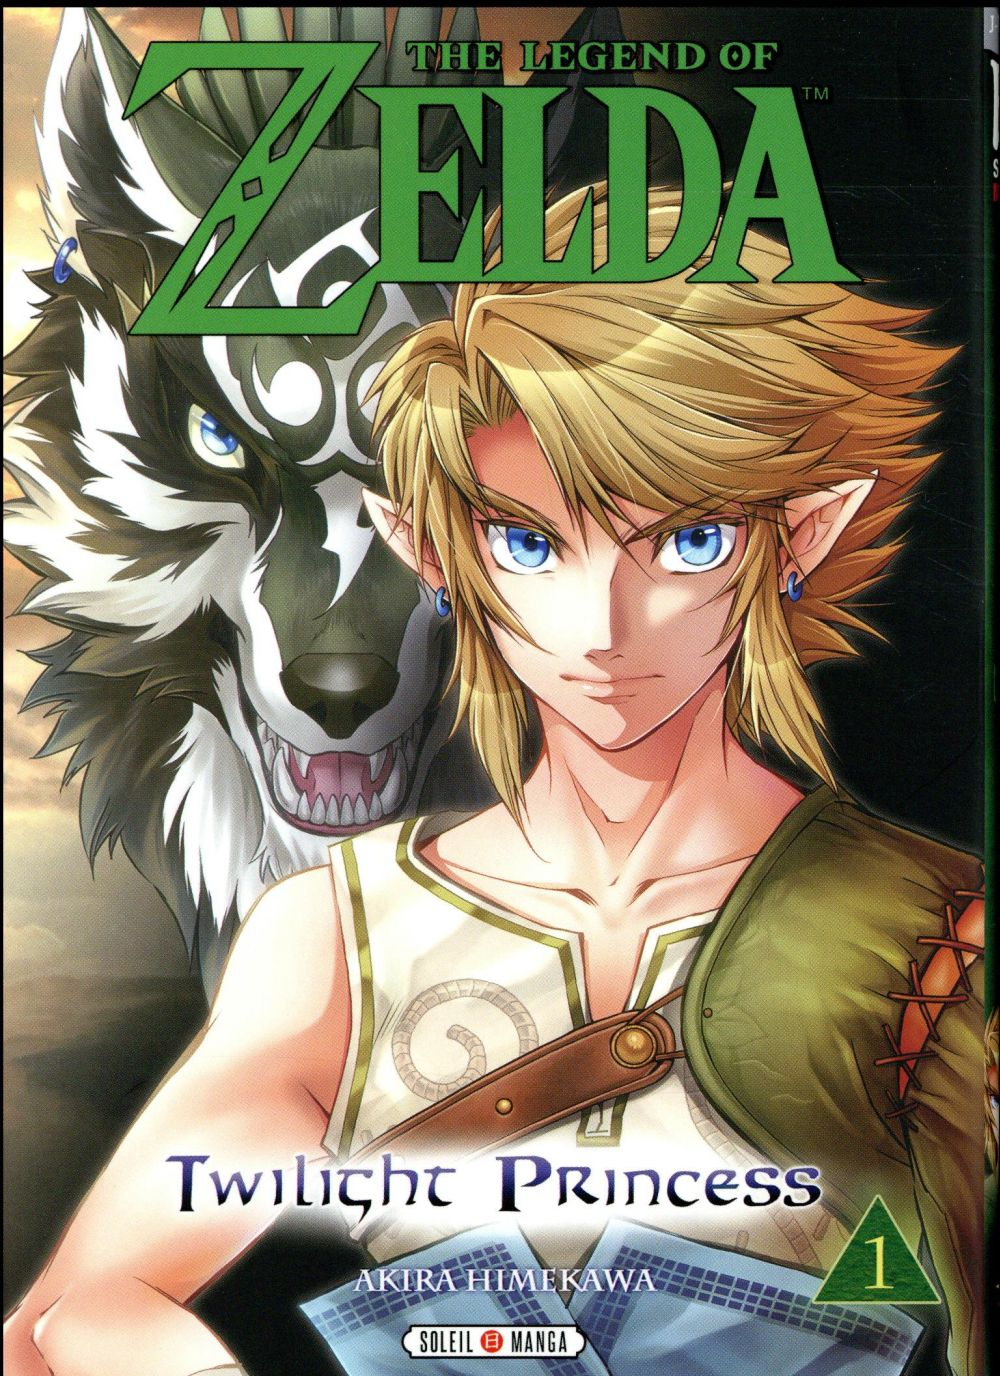 THE LEGEND OF ZELDA - TWILIGHT PRINCESS T.1 Himekawa Akira